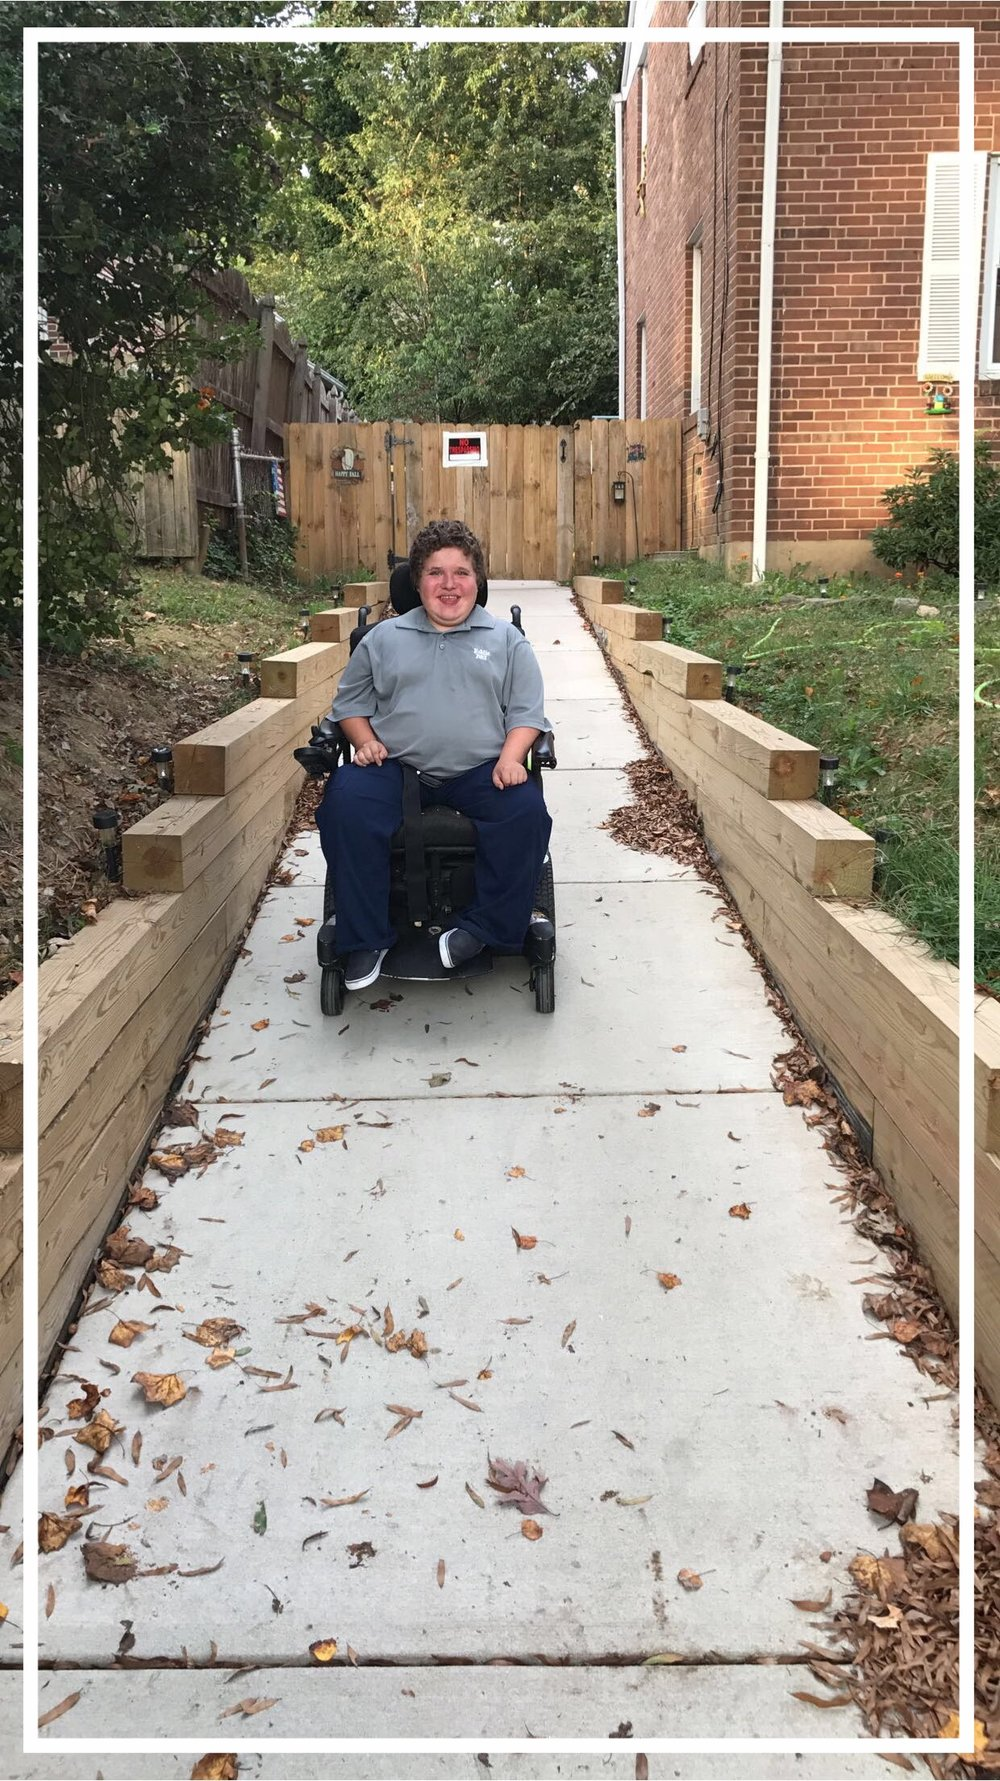 Your support continues to allow MMF to provide life-changing accommodations to our Muscle Champions, so our families' days are filled with smiles and quality of life! MMF Muscle Champion, Eddie Hazeldine, is enjoying his new wheelchair accessible ramp!